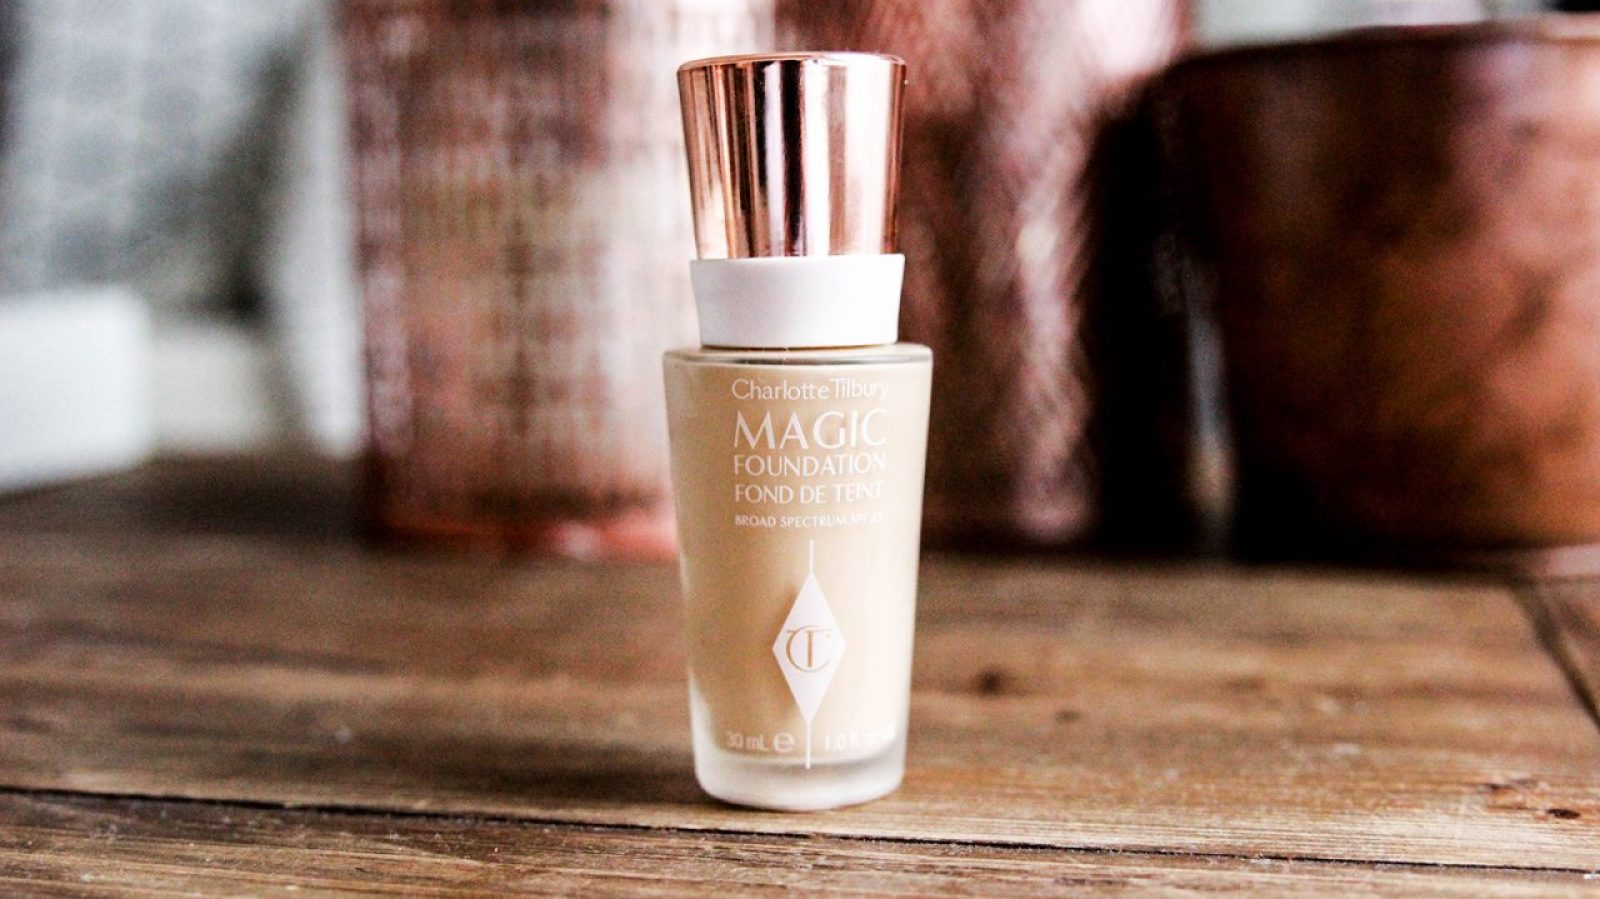 Charlotte Tilbury Magic Foundation Fond de Teint-1